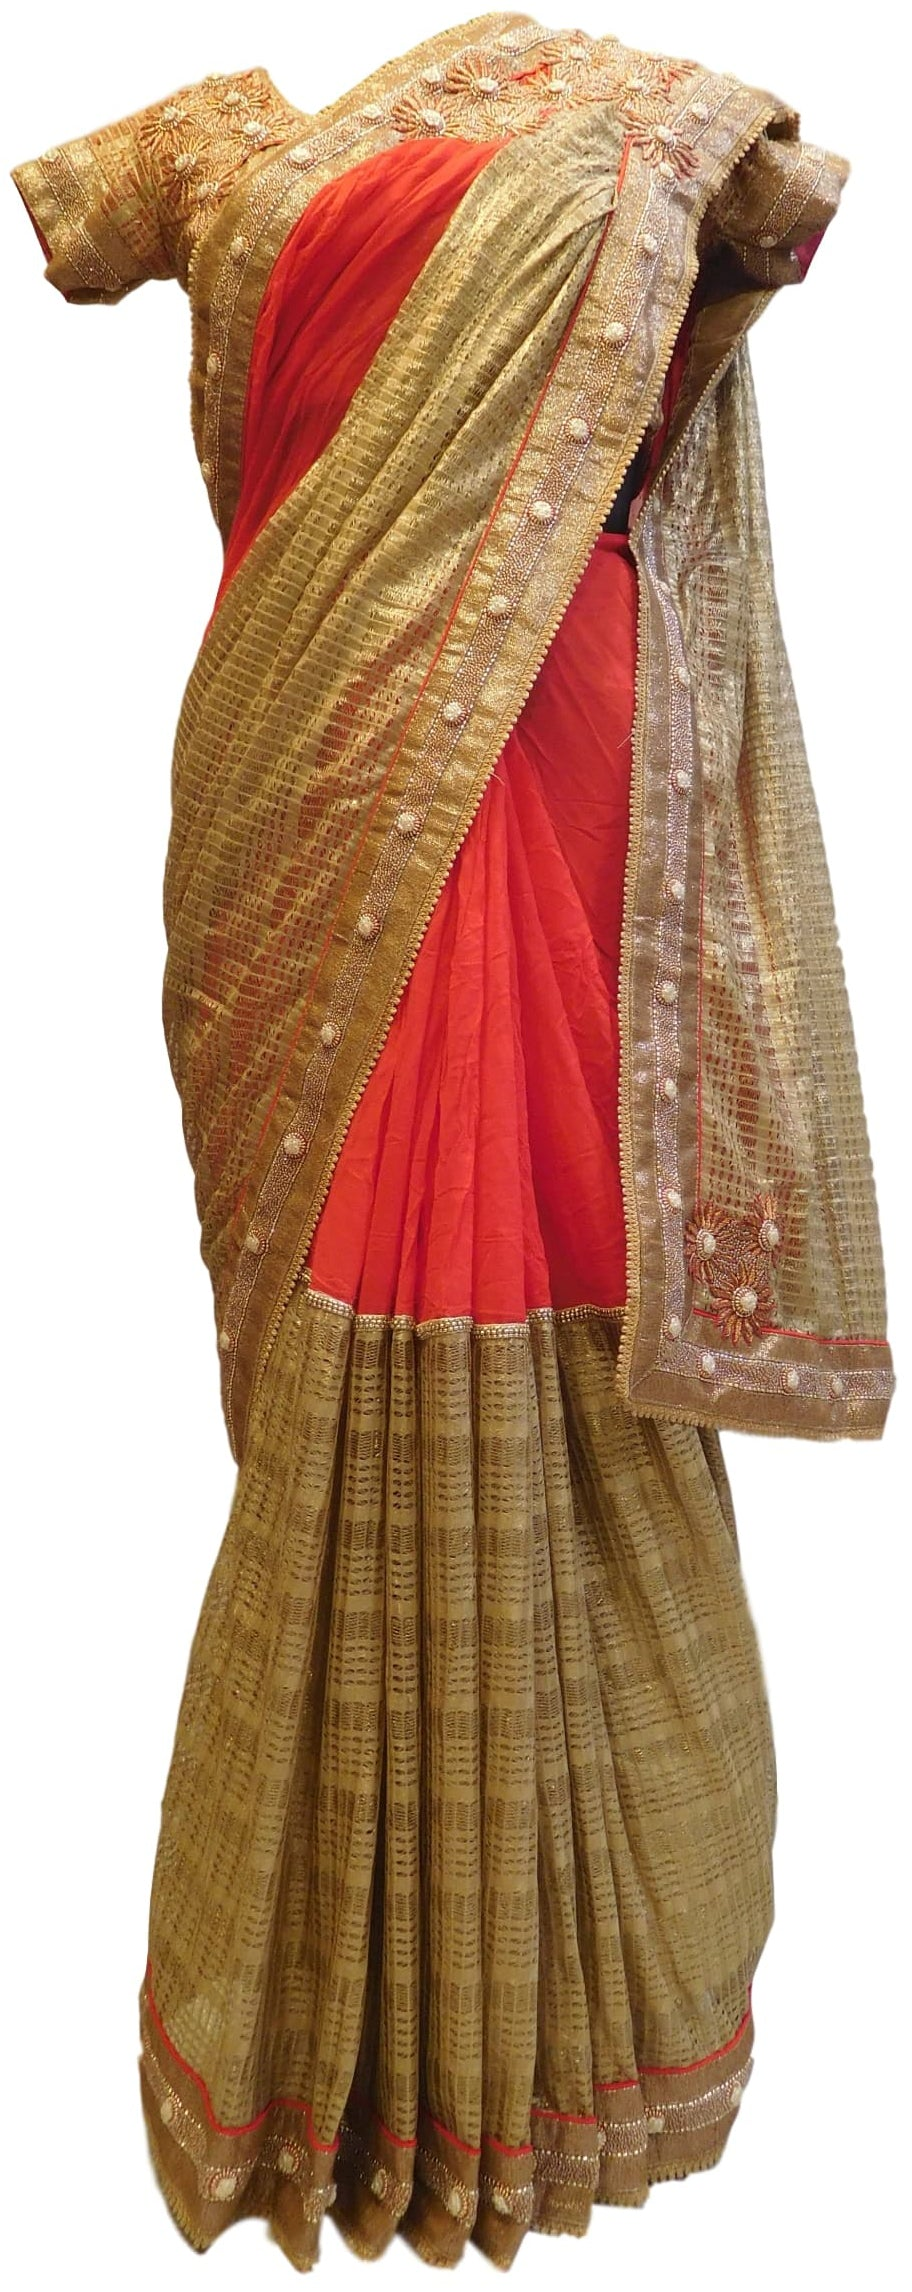 Red & Golden Boutique Style Georgette (Viscos) Hand Embroidery Bullion Cutdana Thread Beads Work Saree Sari With Designer Stitched Blouse